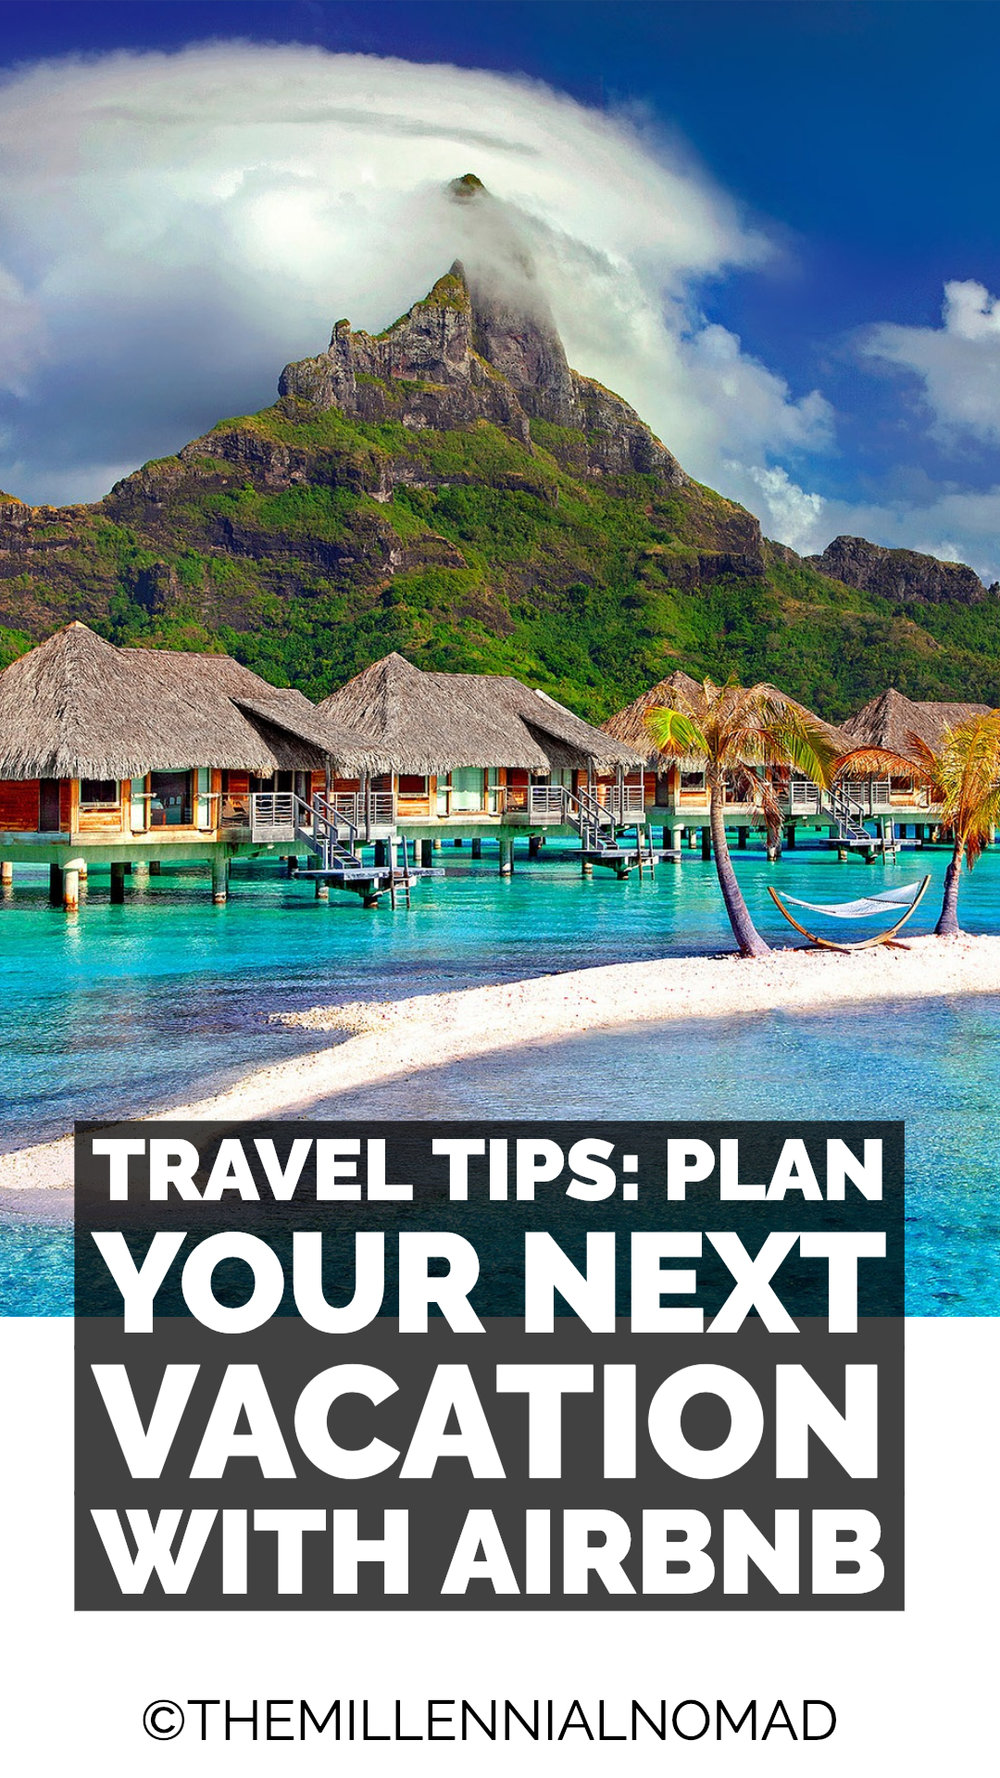 how to plan your next vacation with airbnb - Think about it. If you are traveling to a foreign country and would like to experience the local culture. Do you want to stay in a hotel and do everything as you would do back home, or would you rather stay at a local's place and experience their culture, their food, their history?